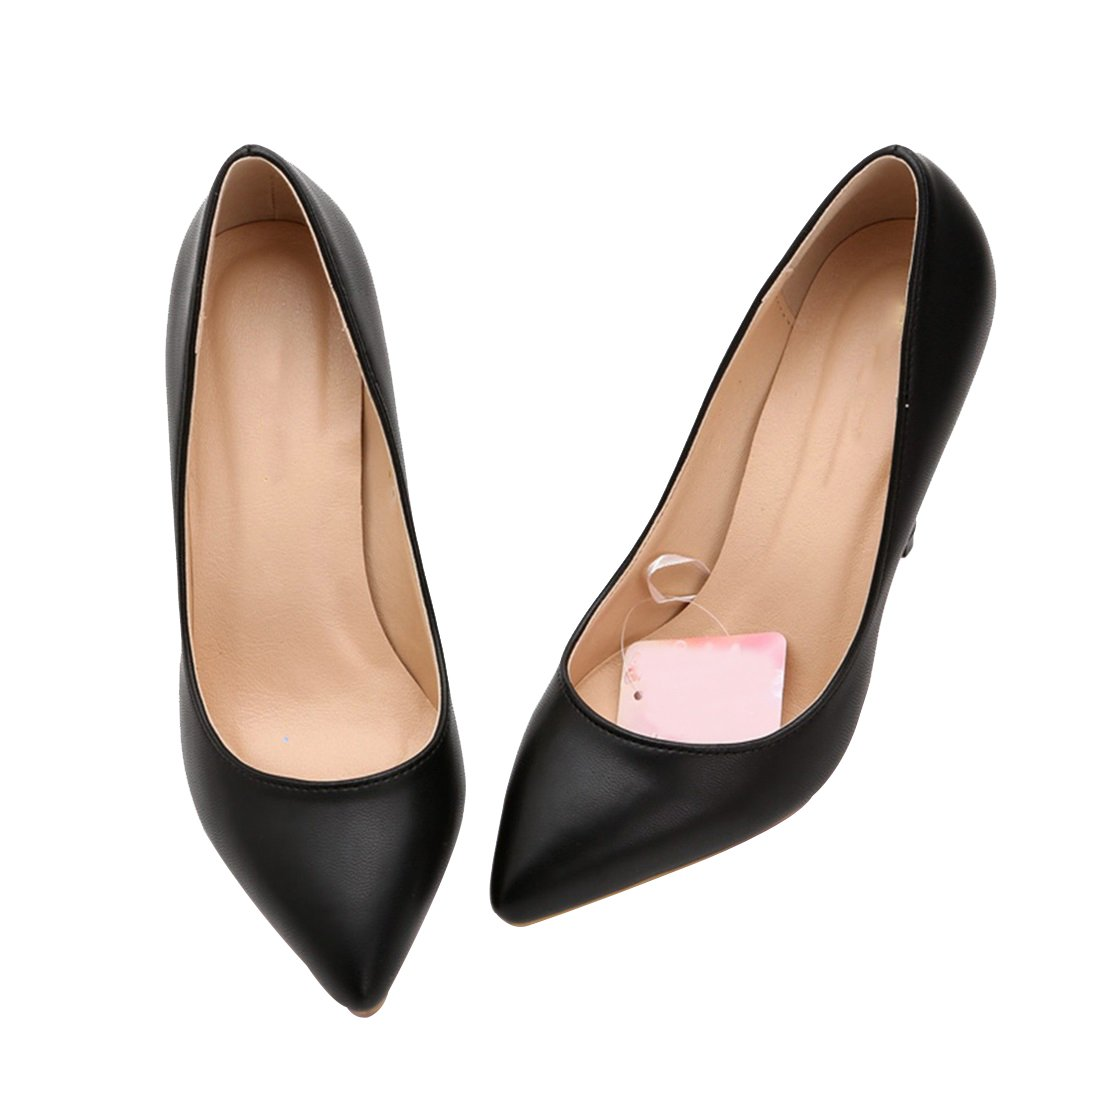 HooH Damen Pointed YW052 Toe Stiloetto Abendschuhe Pumps YW052 Pointed Schwarz e3f657